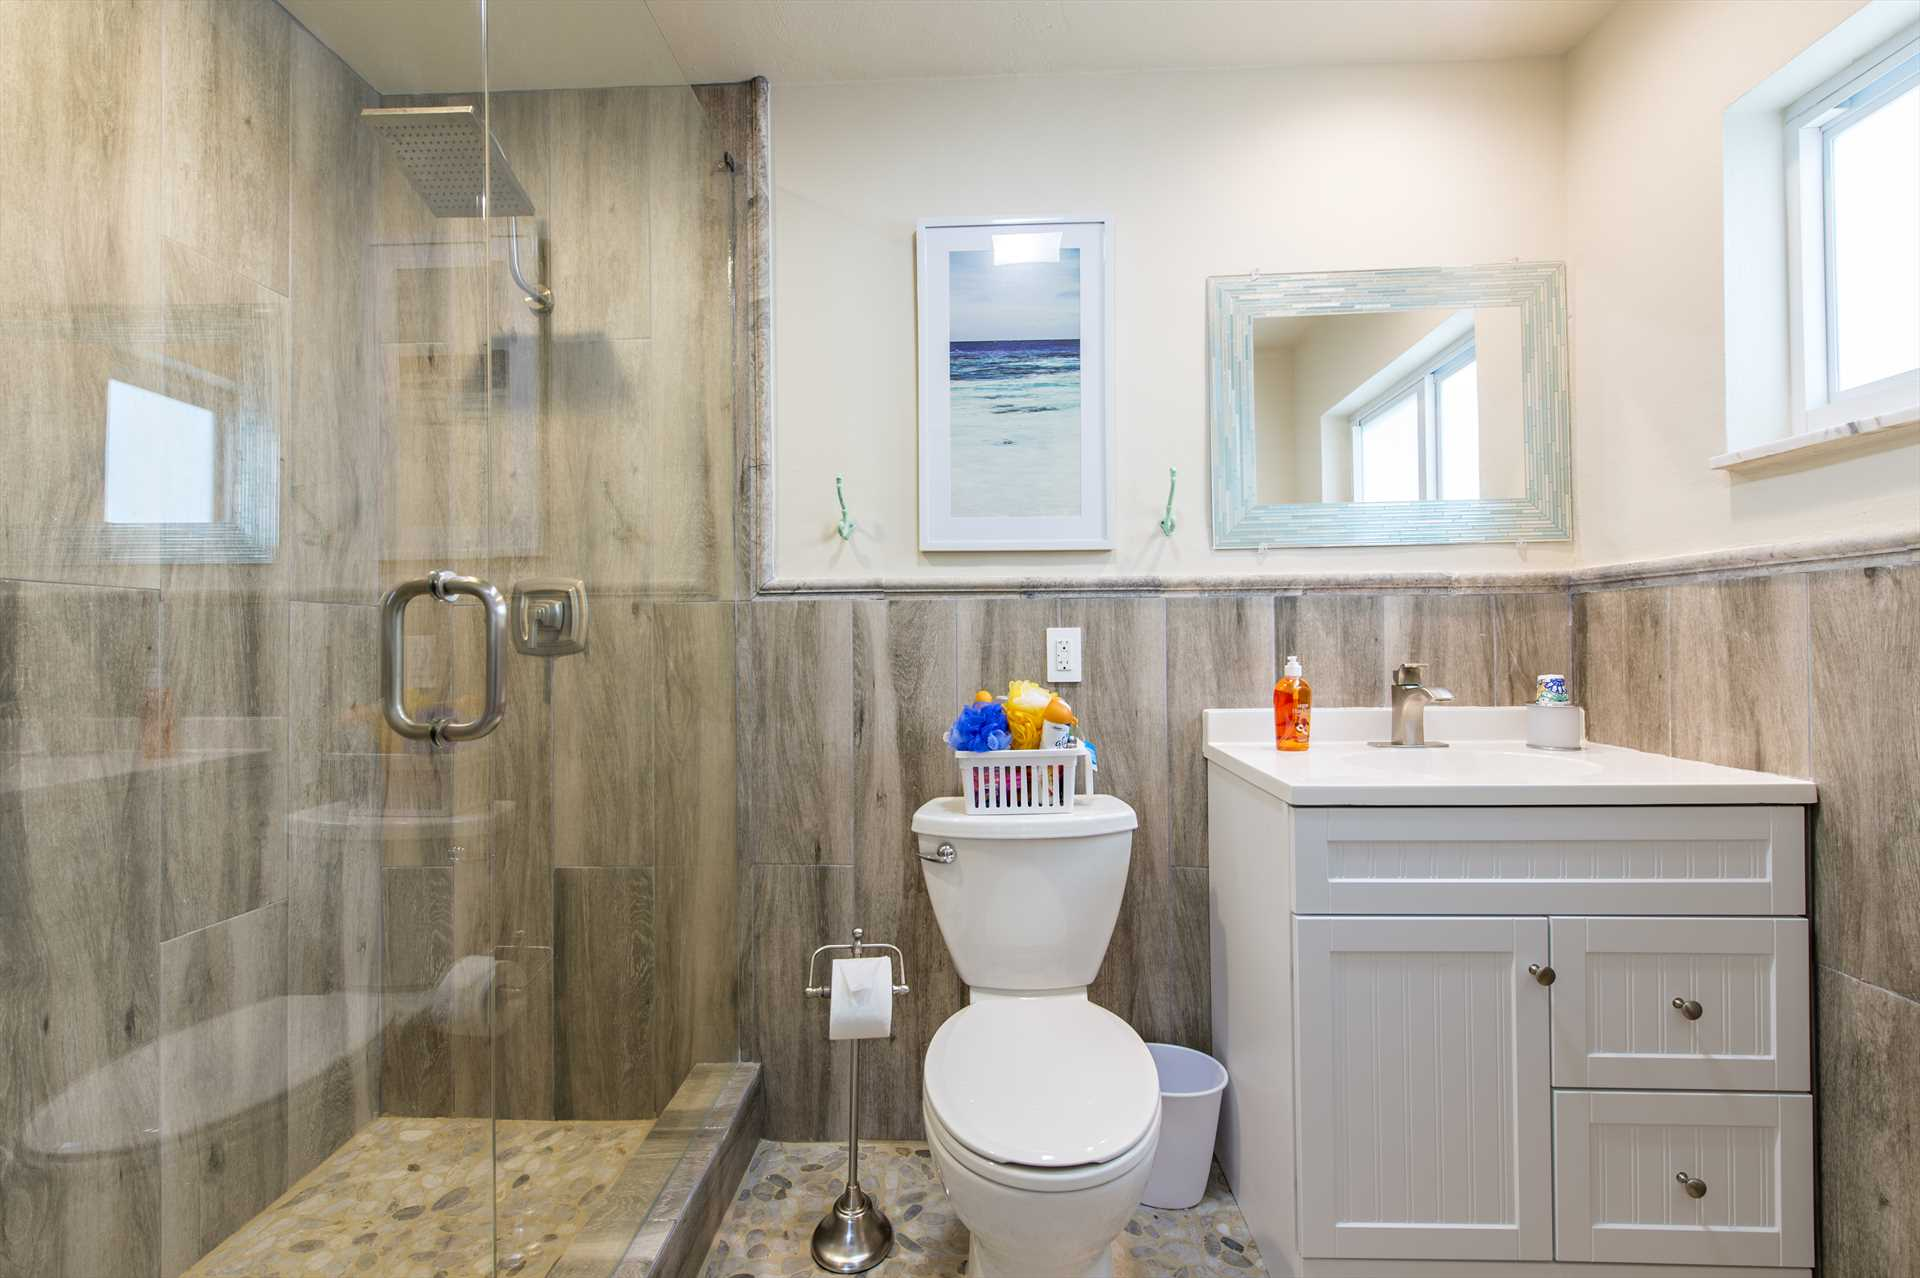 Third bedroom ensuite bath features glass shower.